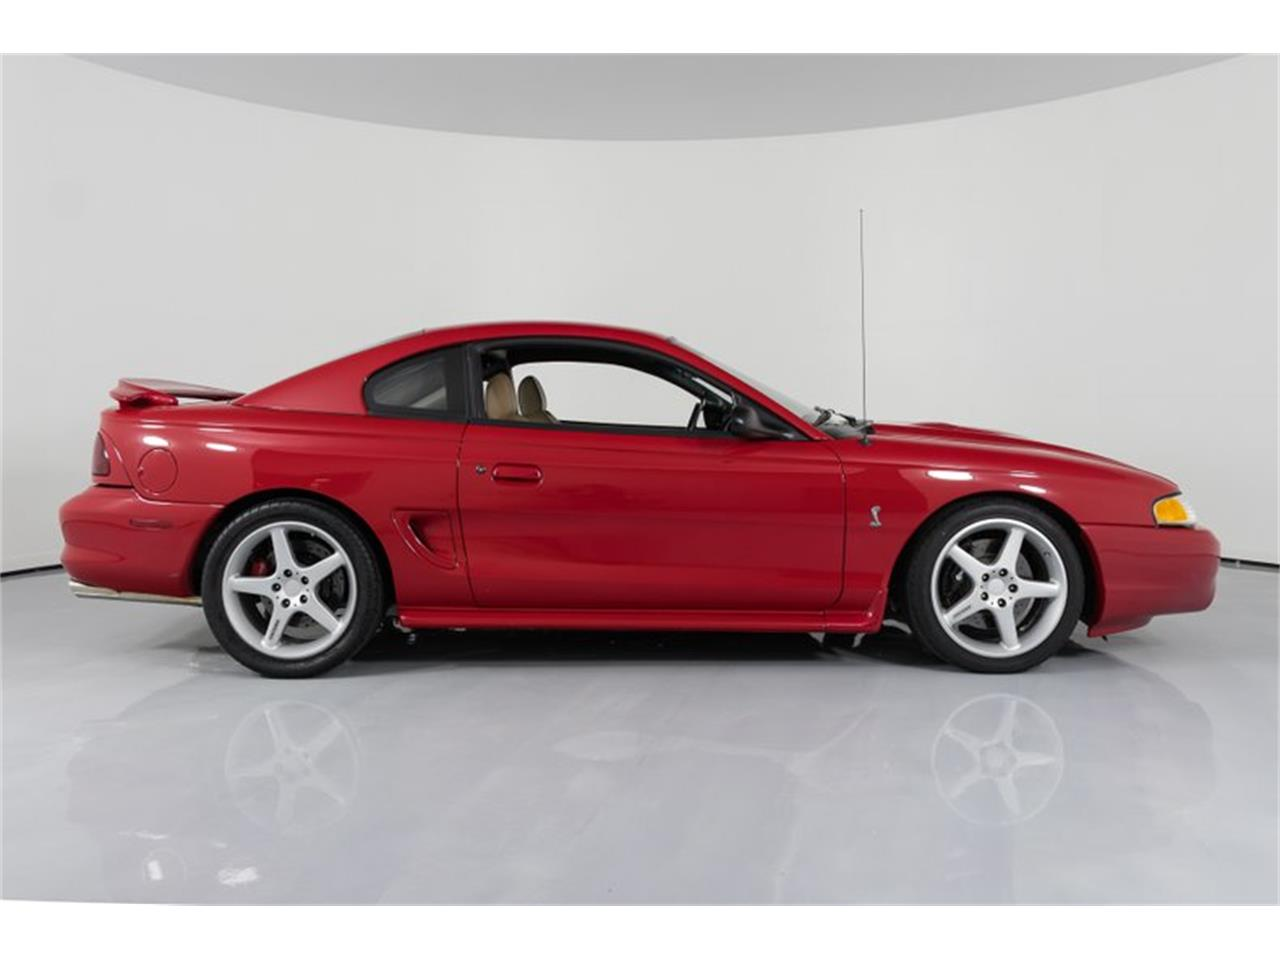 Large Picture of '97 Mustang located in St. Charles Missouri Offered by Fast Lane Classic Cars Inc. - Q83F